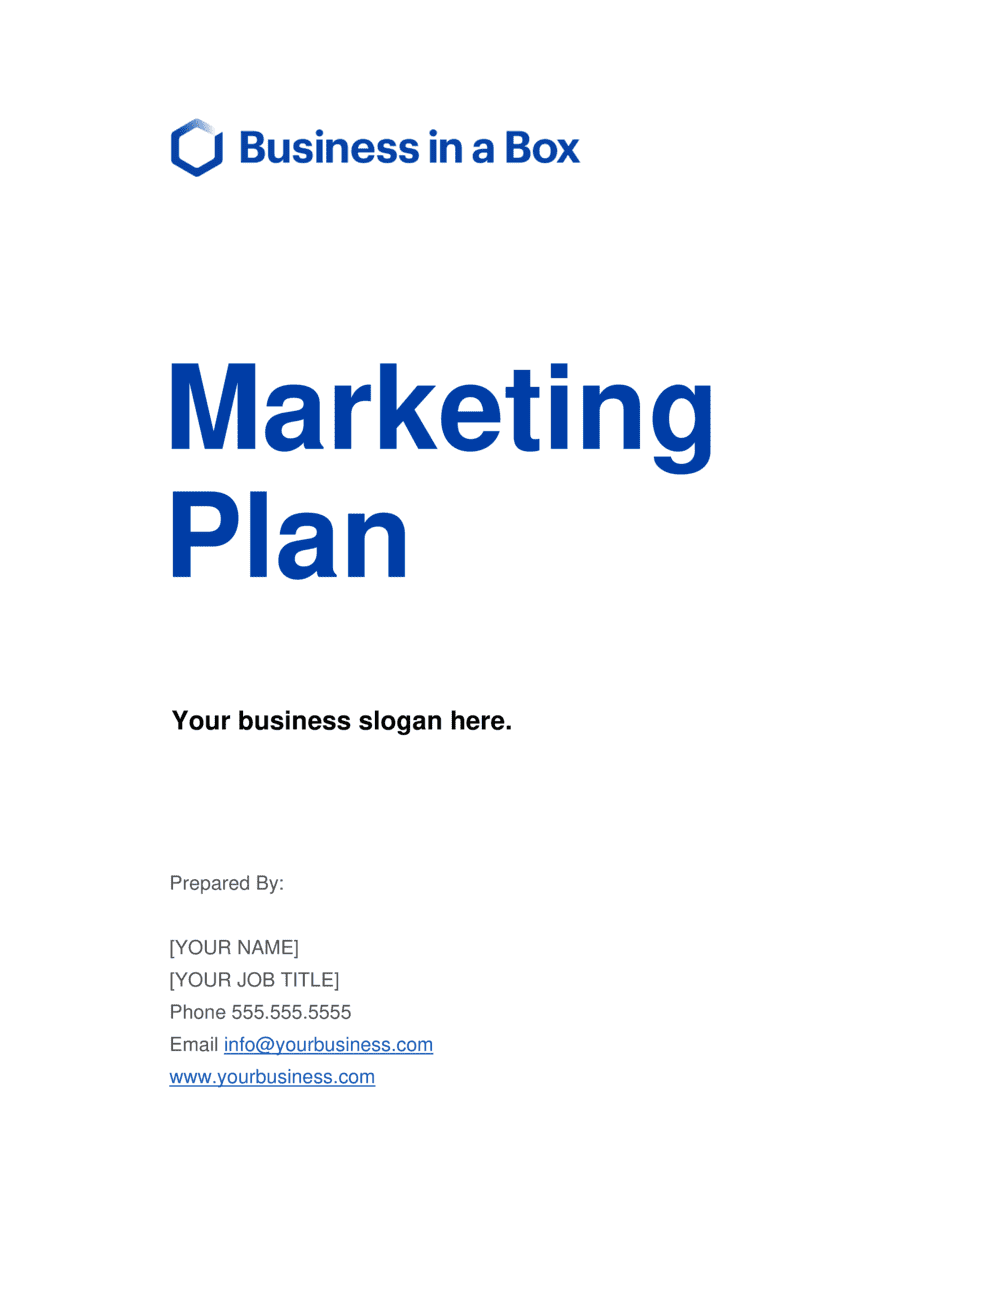 Business-in-a-Box's Marketing Plan Template